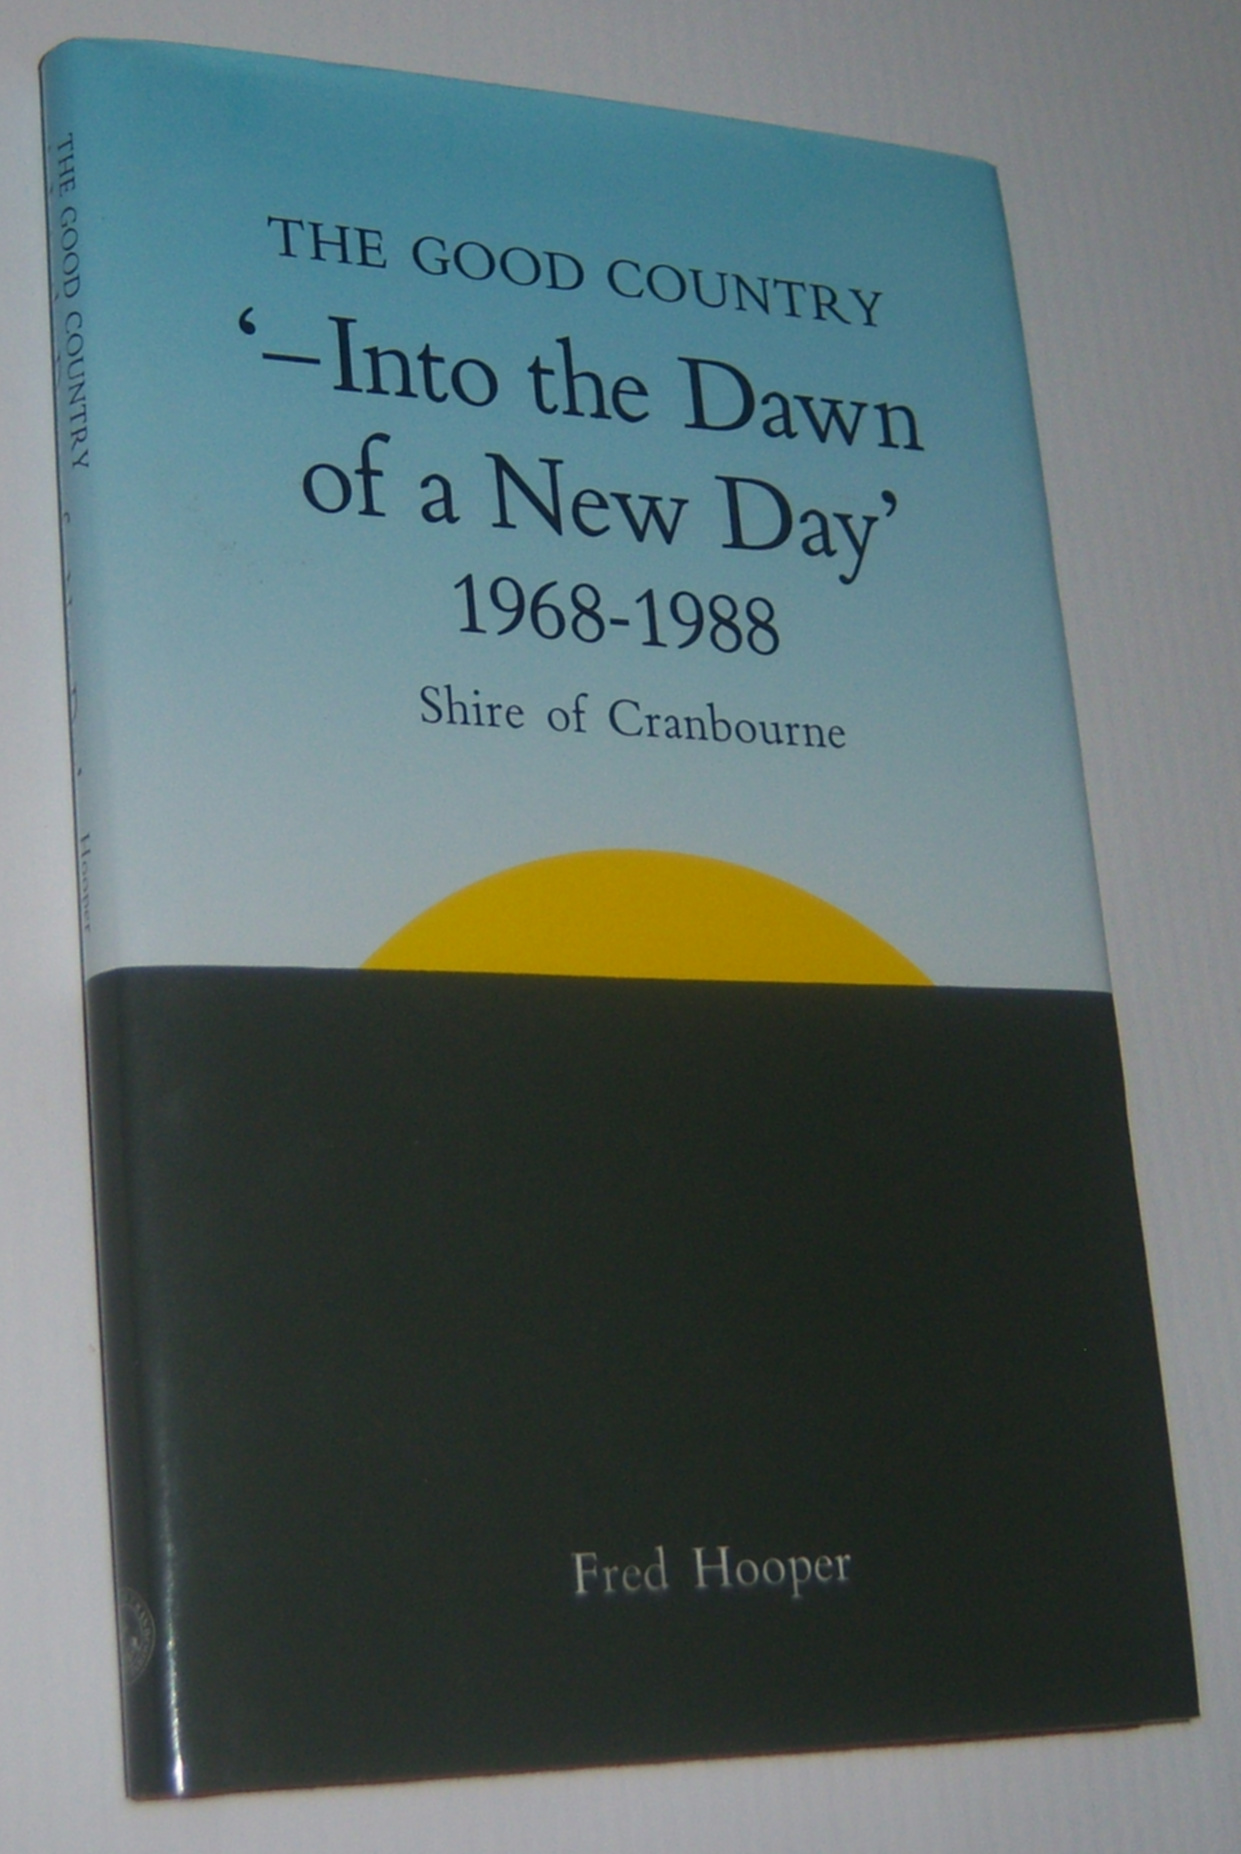 Image for THE GOOD COUNTRY ' - Into the Dawn of a New Day ' (1968-1988) Shire of Cranbourne